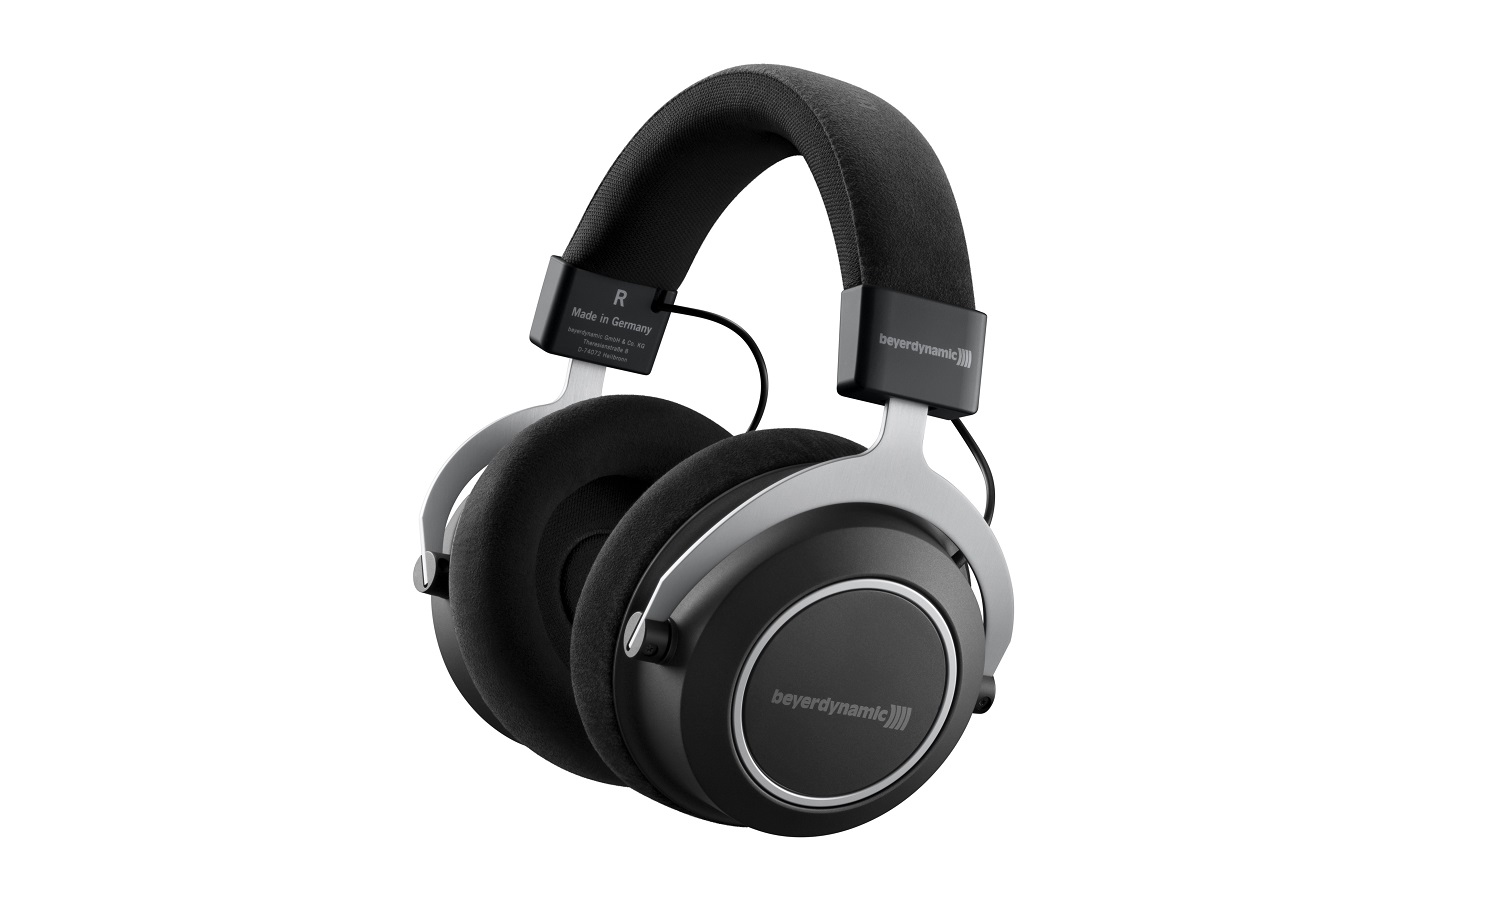 Coming soon: Amiron wireless headphones from Beyerdynamic